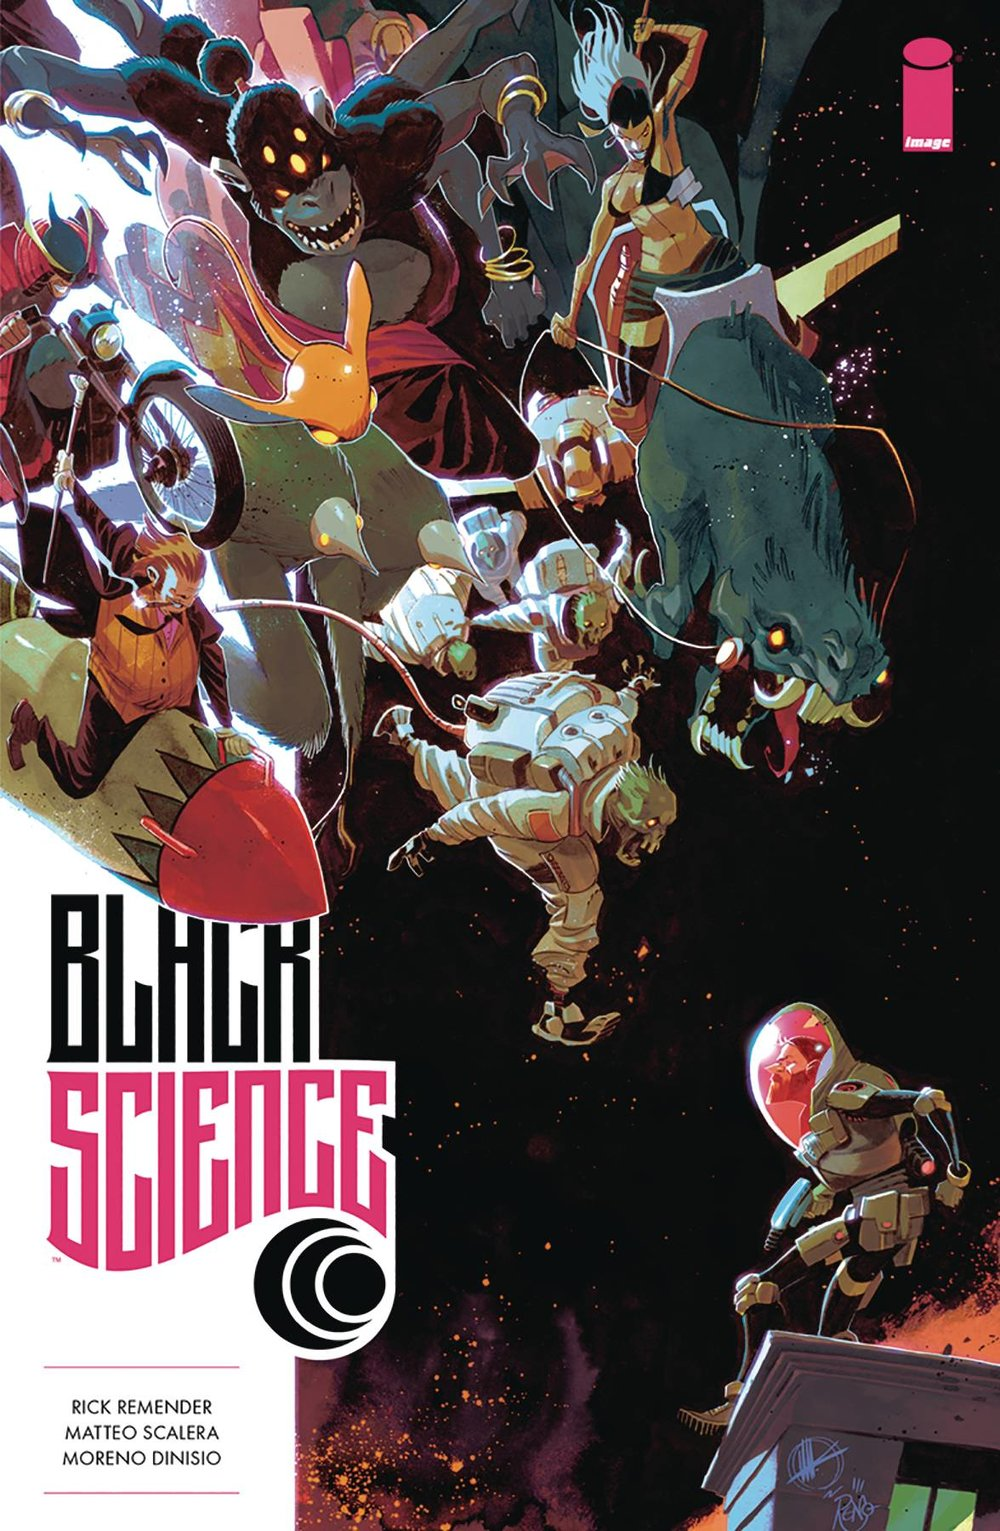 BLACK SCIENCE 31 CVR A SCALERA & DINISIO.jpg